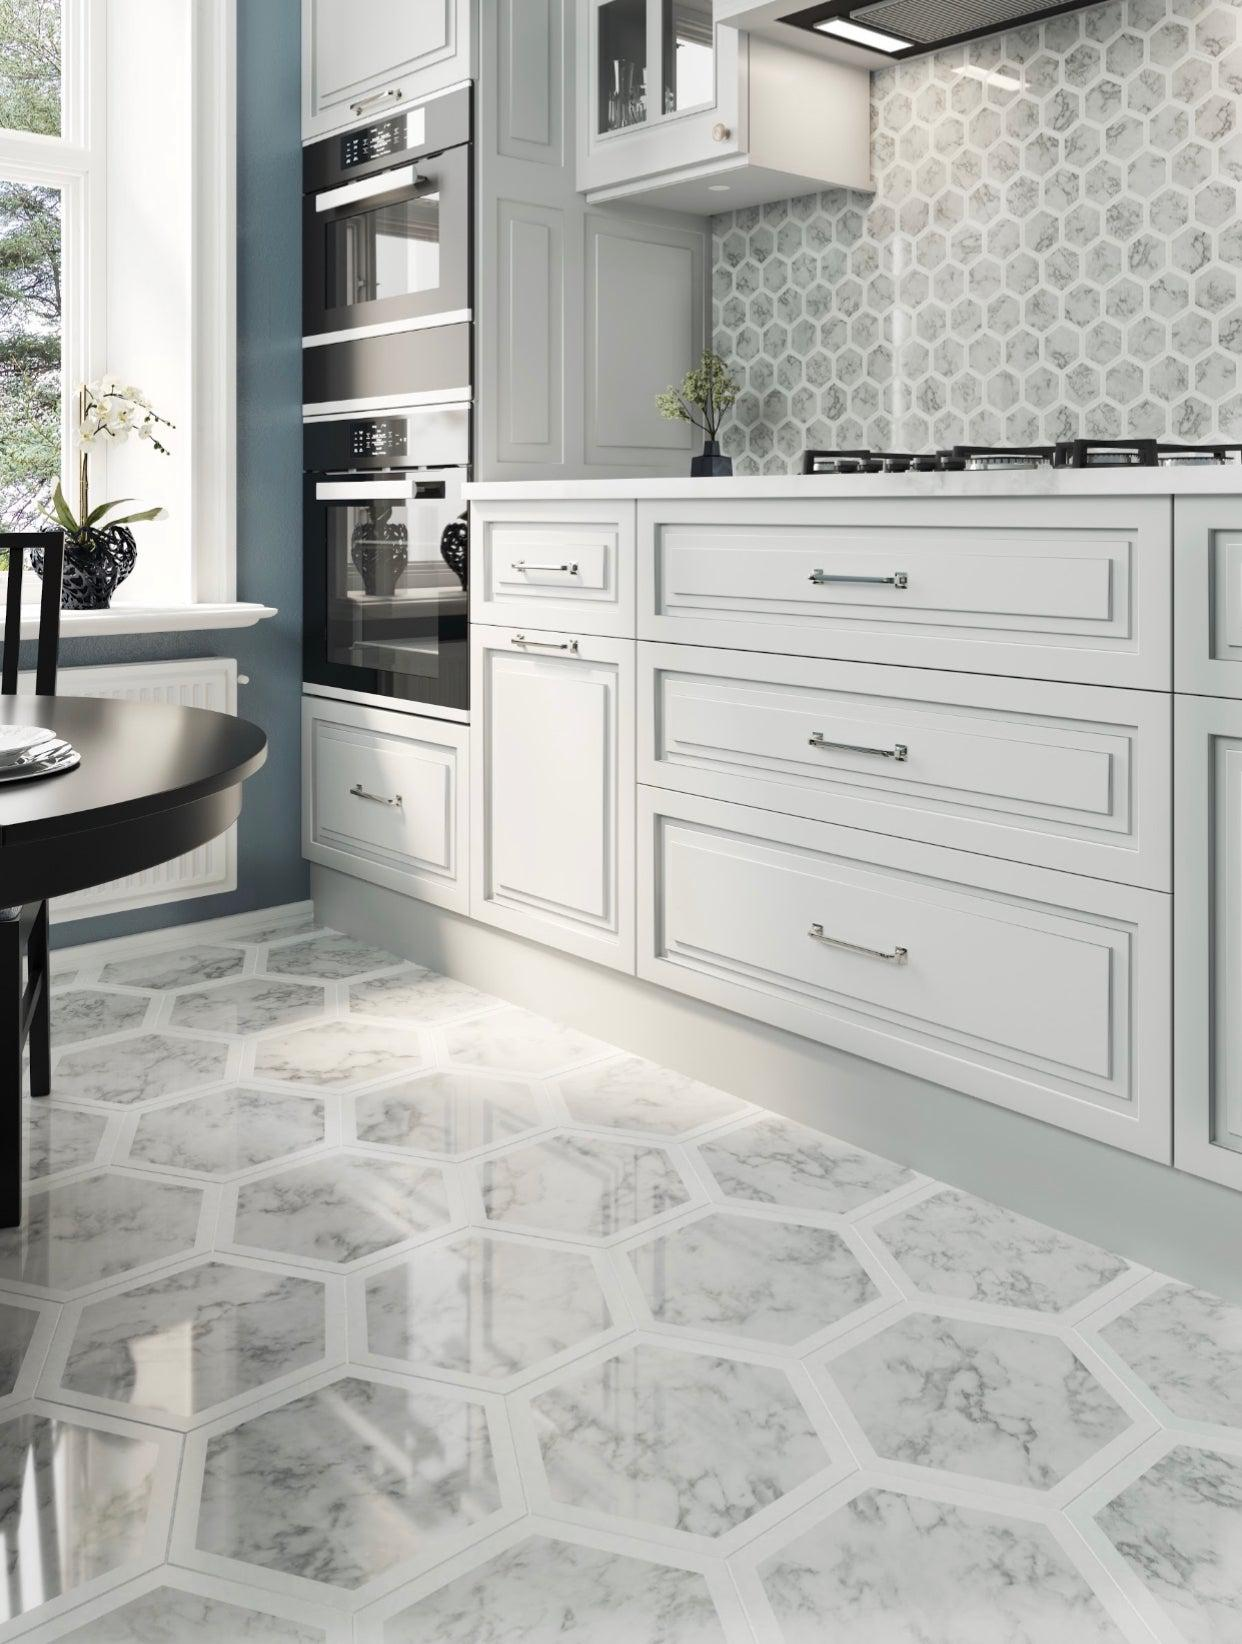 Selo Grand Hexagon Carrara And Thassos Marble Mosaic Geometric Flooring